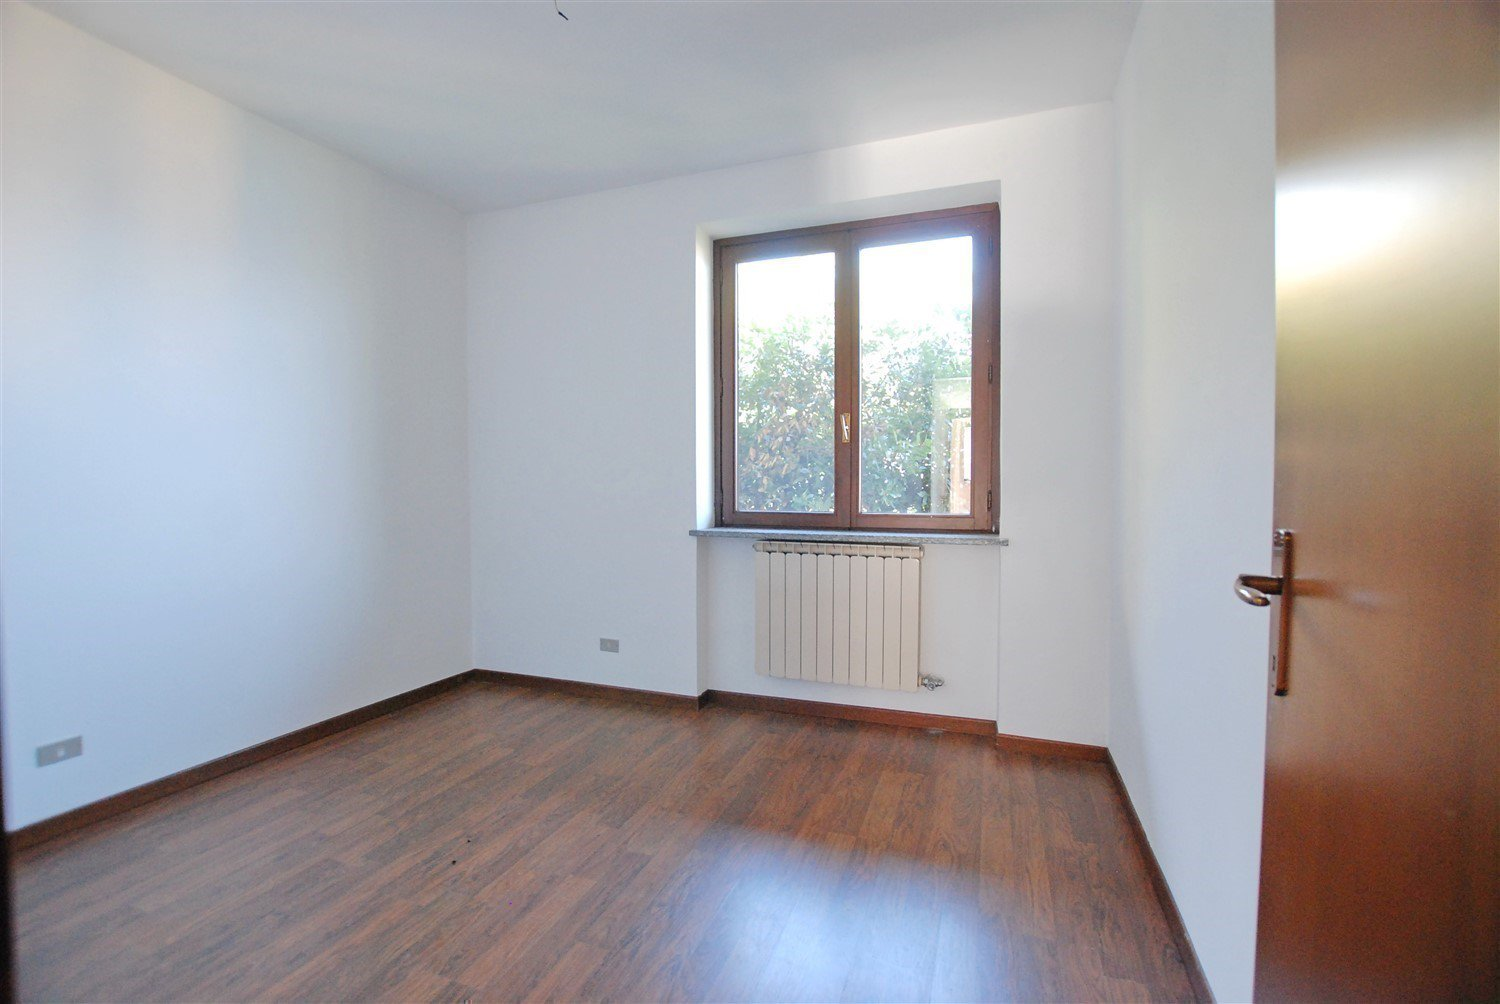 Apartment for sale in Belgirate - chamber